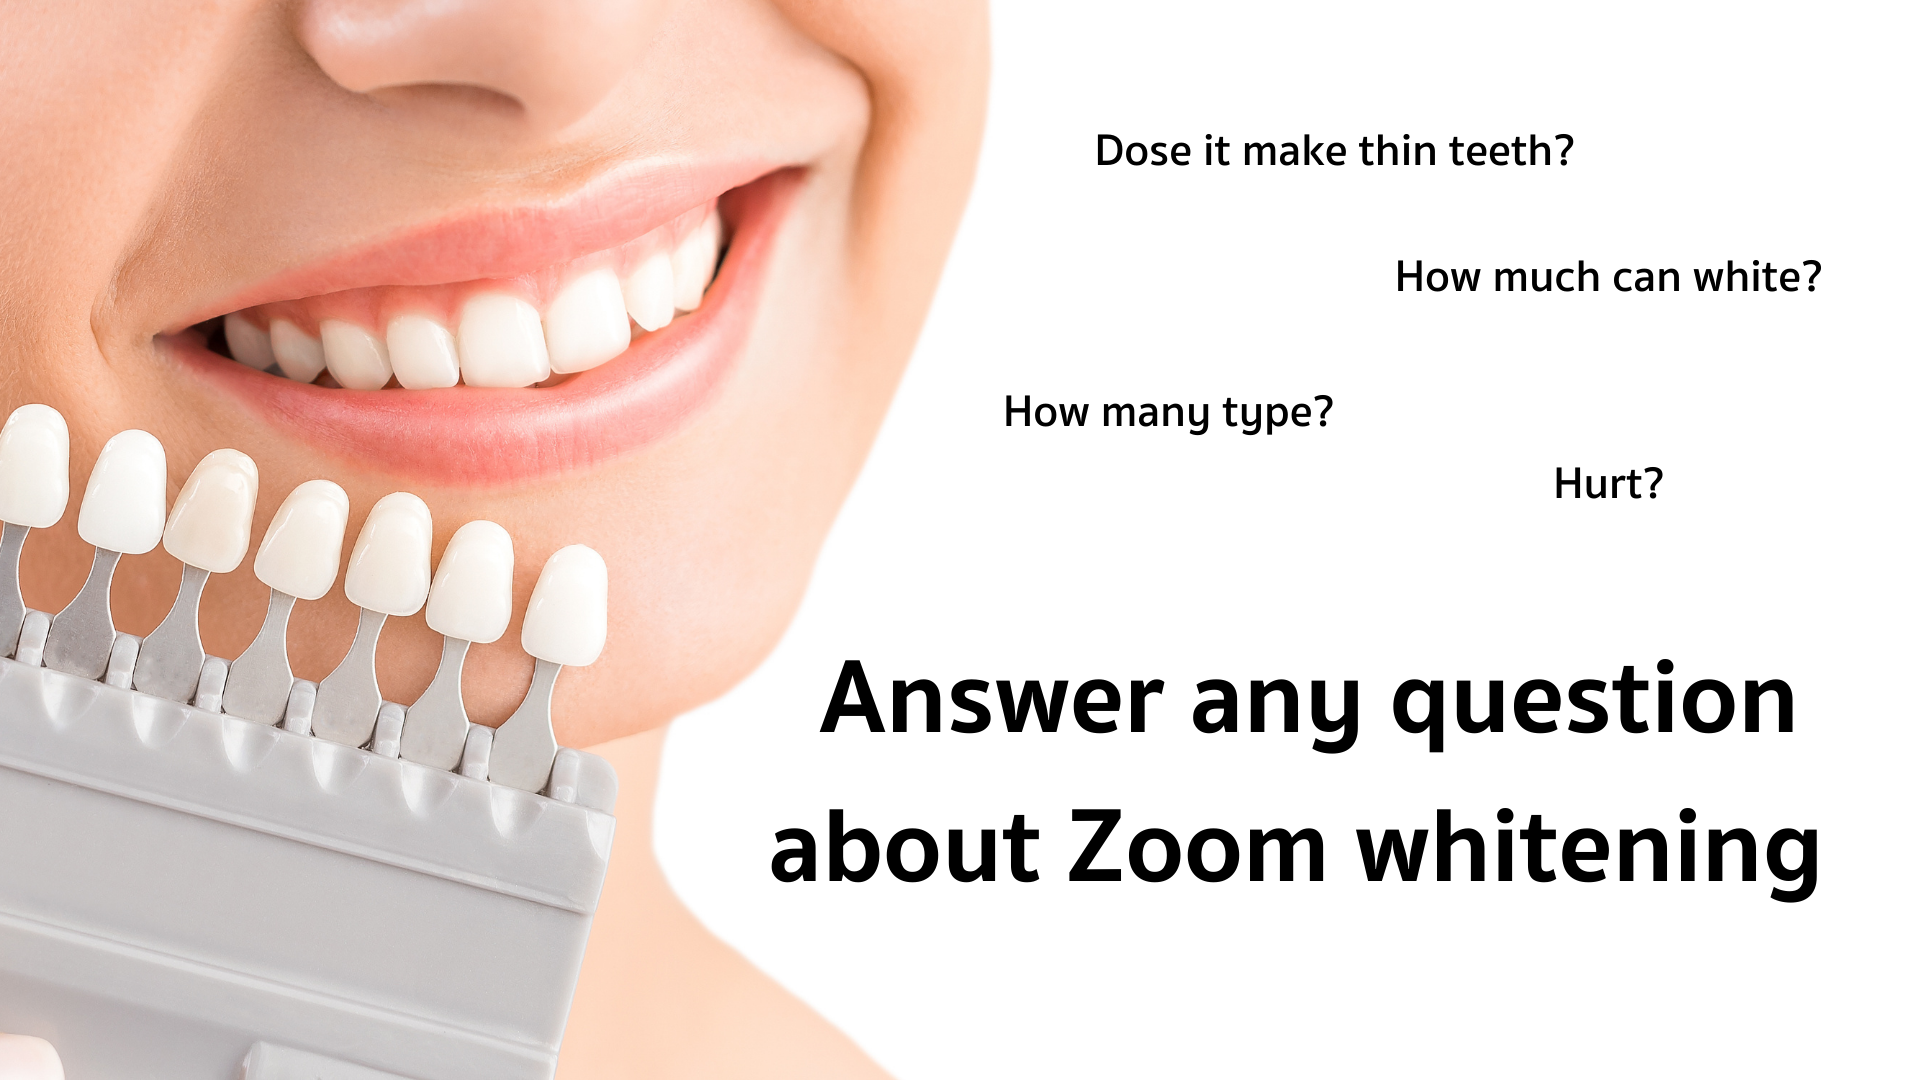 Answer any question about Zoom whitening